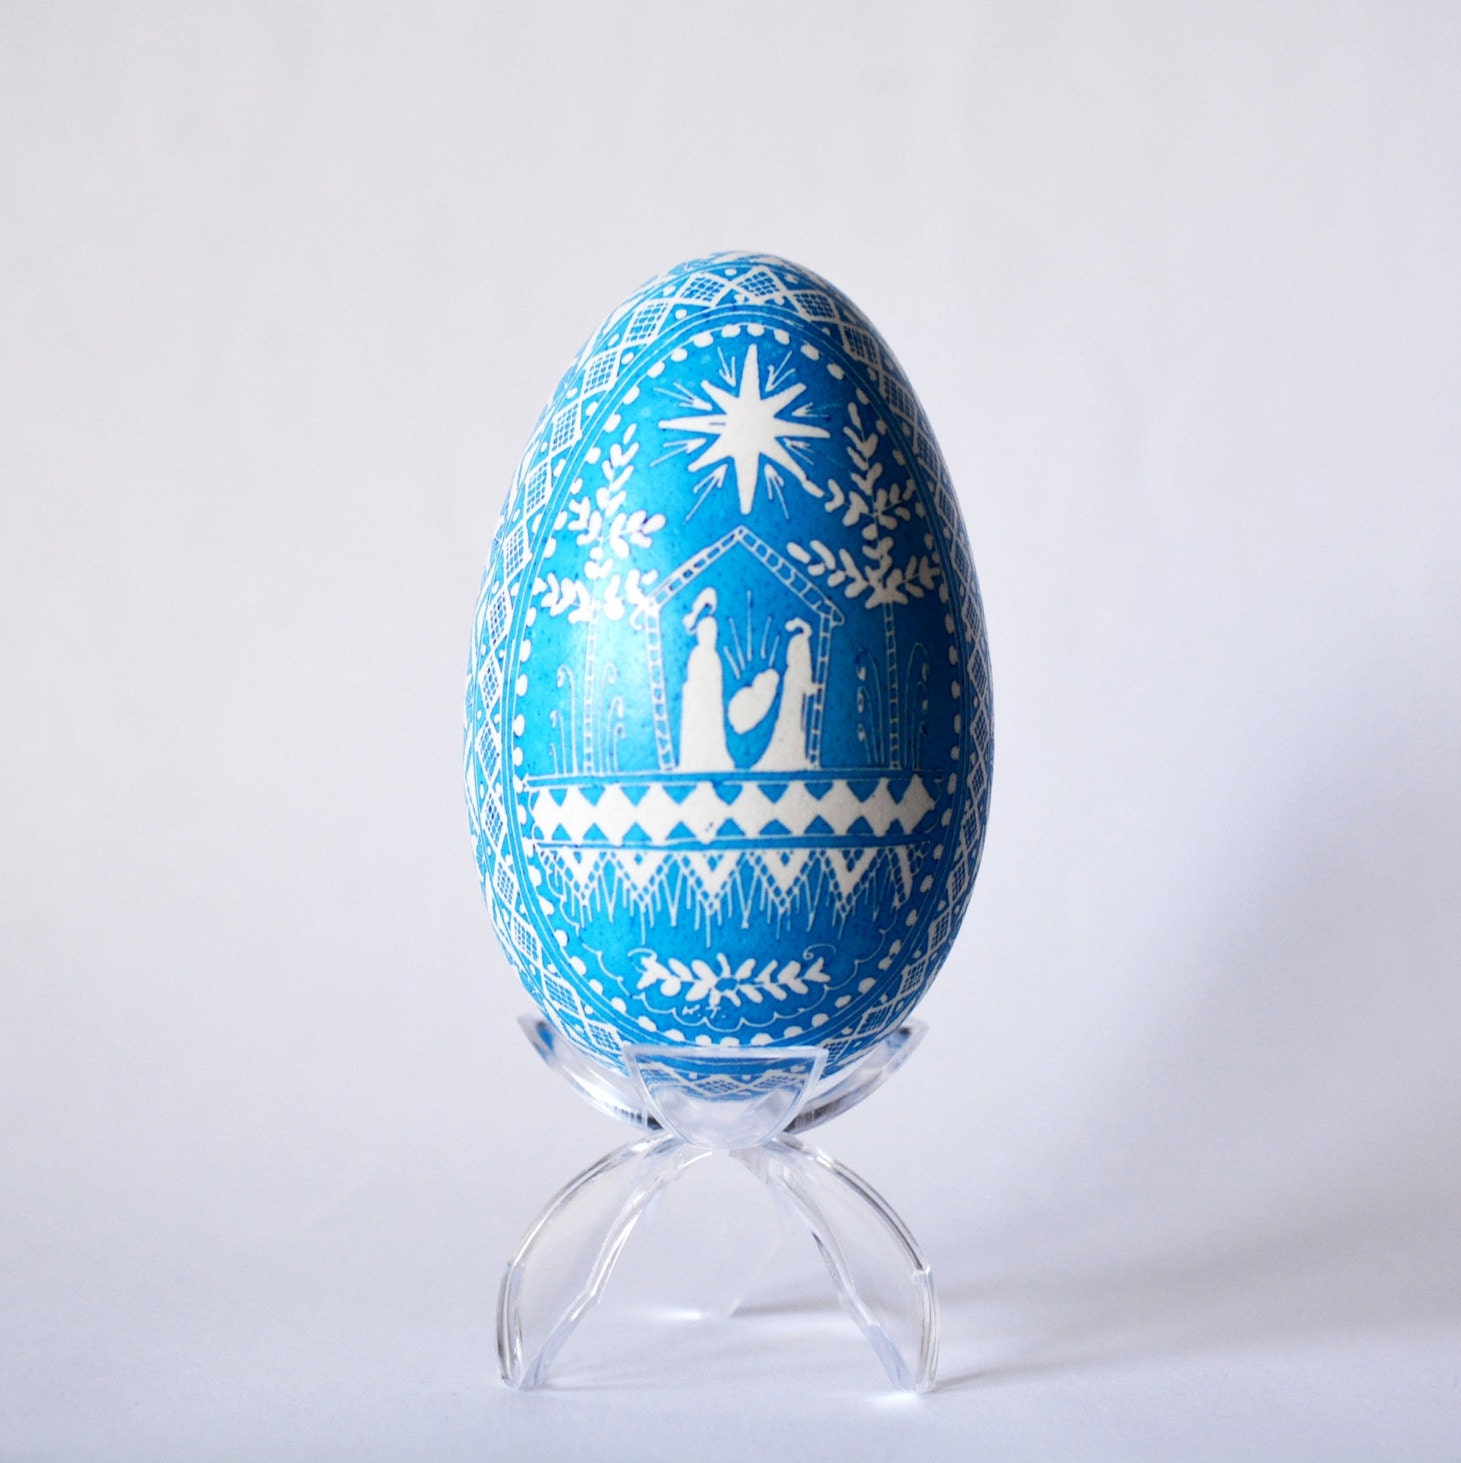 nativity scene of our lord jesus christ by ukrainianeastereggs